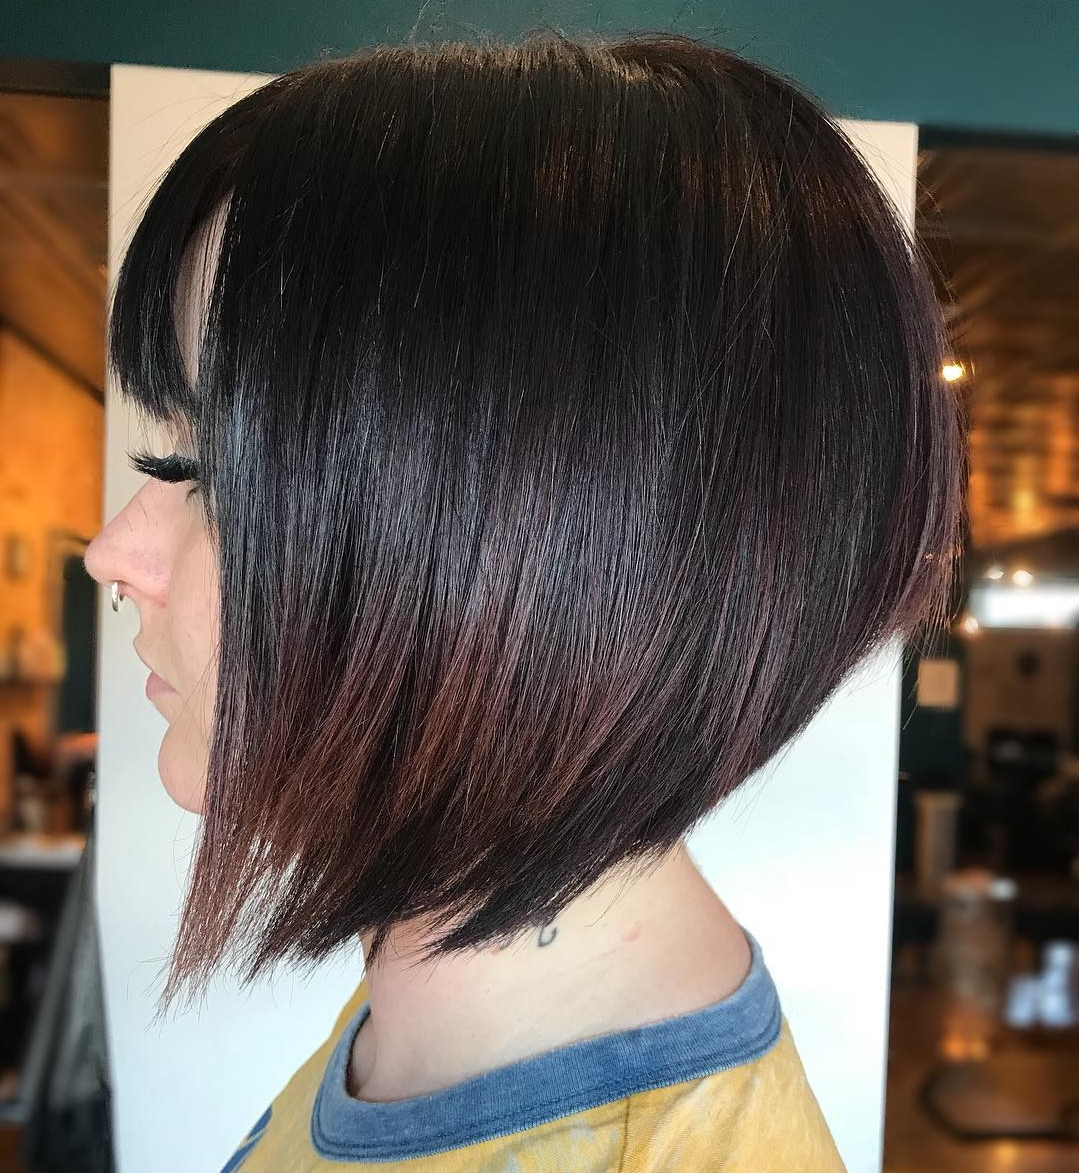 45 Short Hairstyles For Fine Hair To Rock In 2019 With Regard To Well Known Black And Brown Choppy Bob Hairstyles (View 13 of 20)